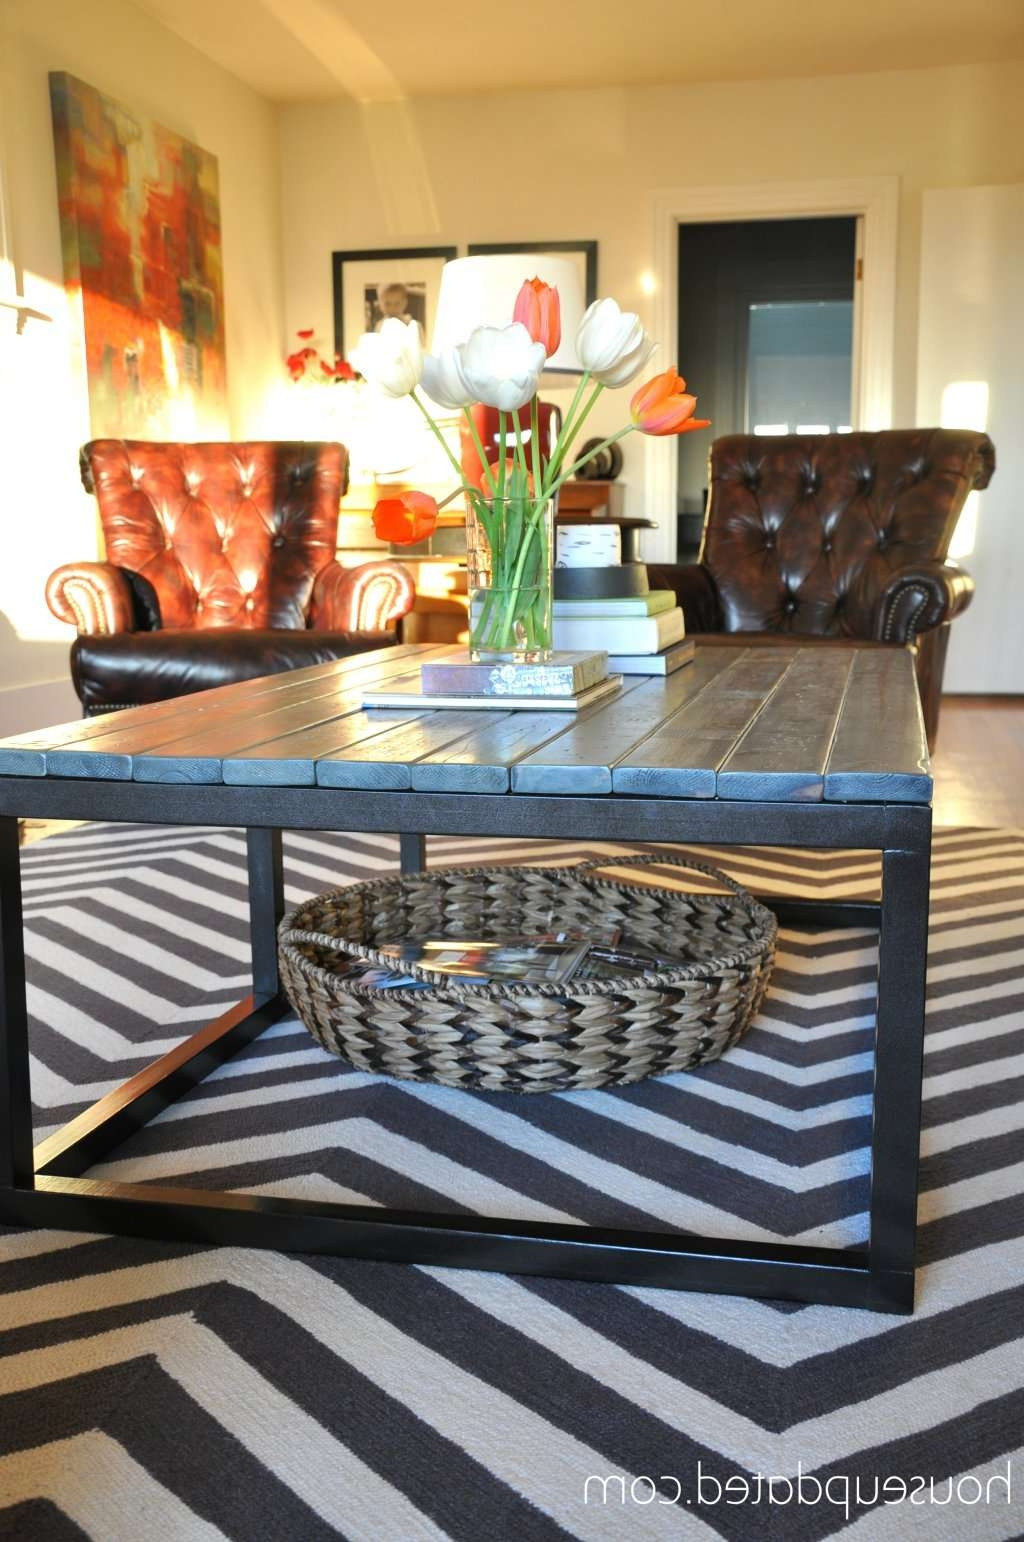 Gallery Of Coffee Tables With Basket Storage Underneath View 15